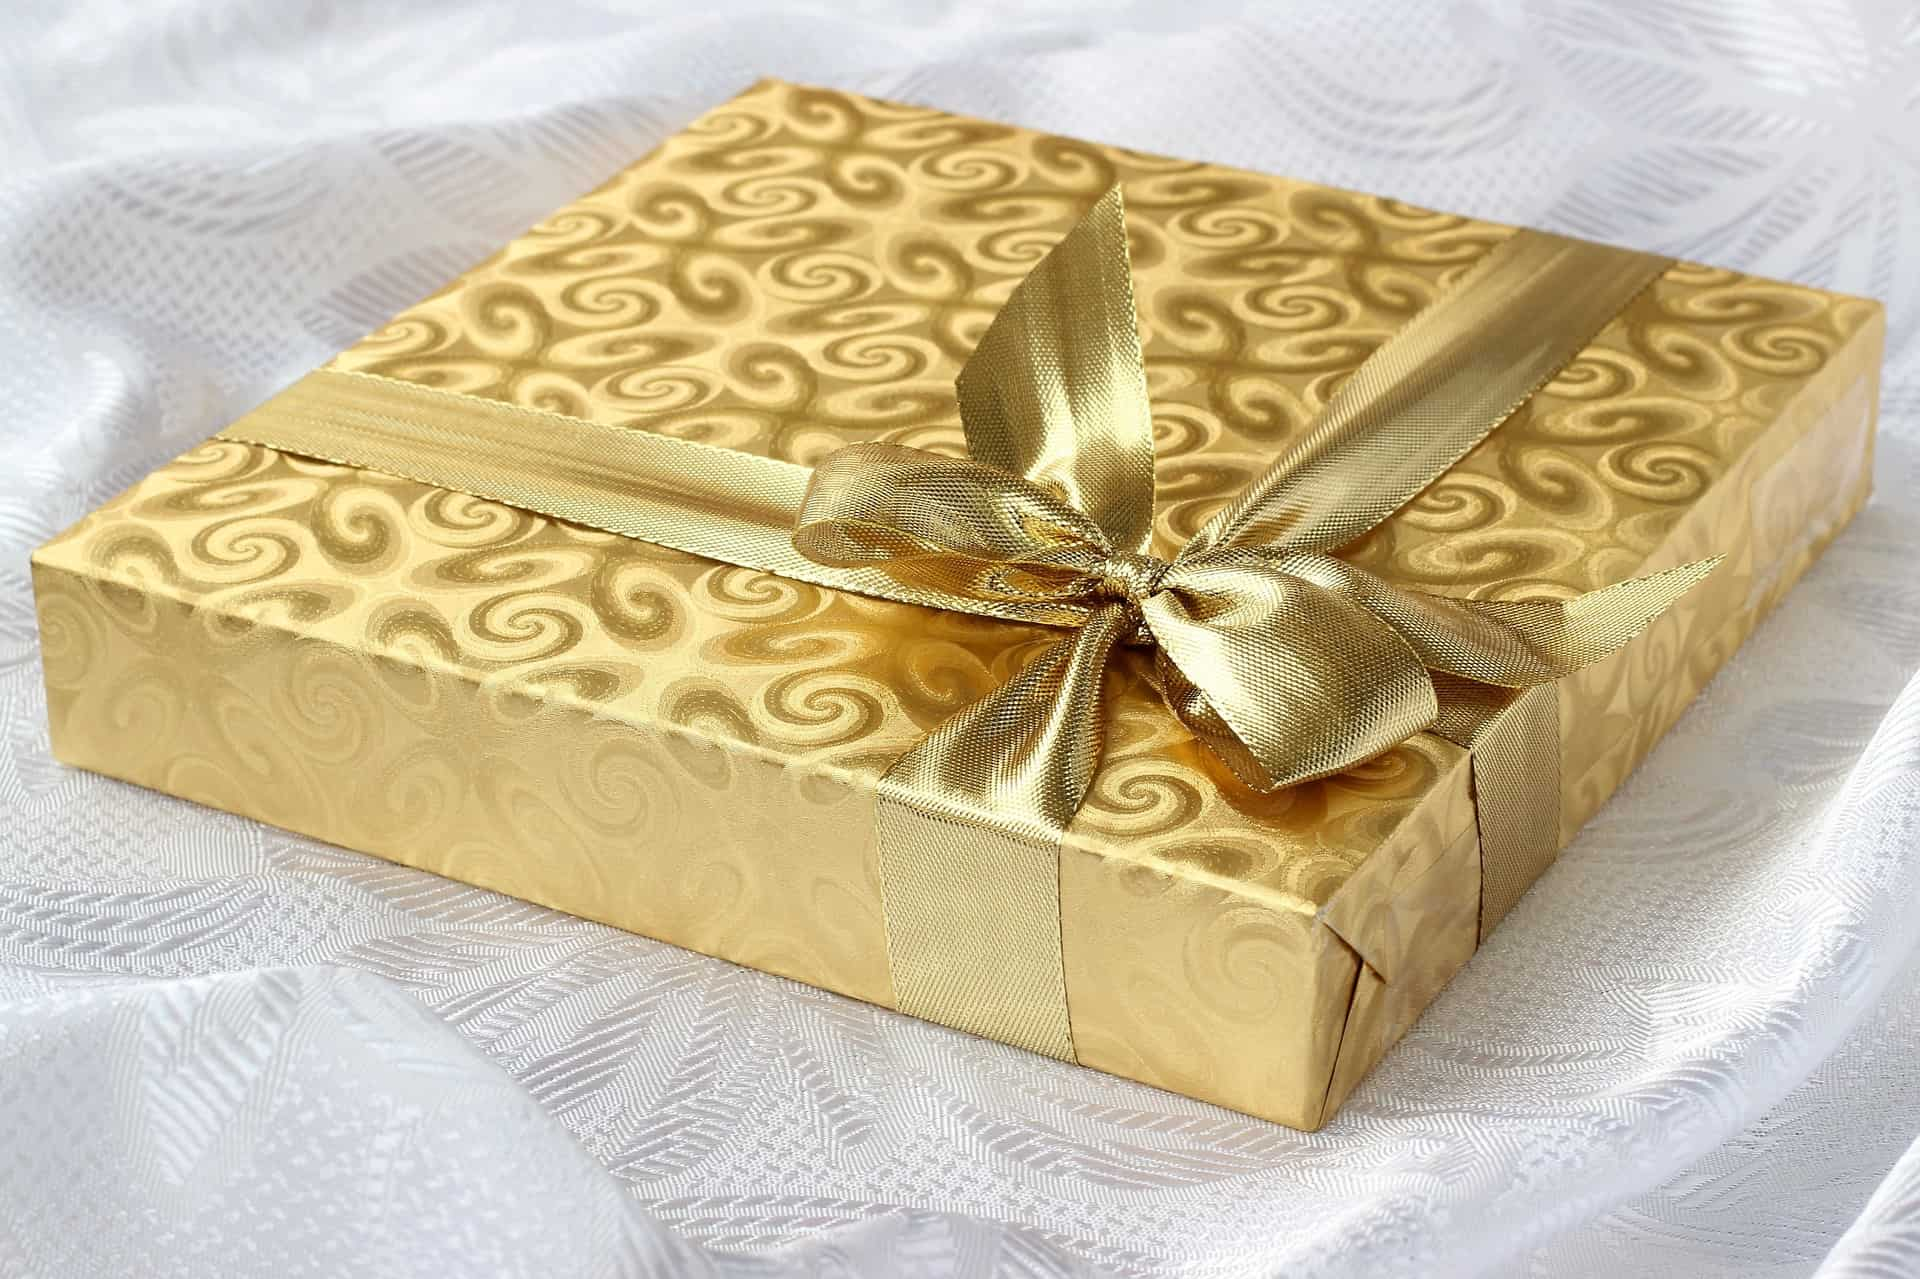 a gift wrapped with a golden paper